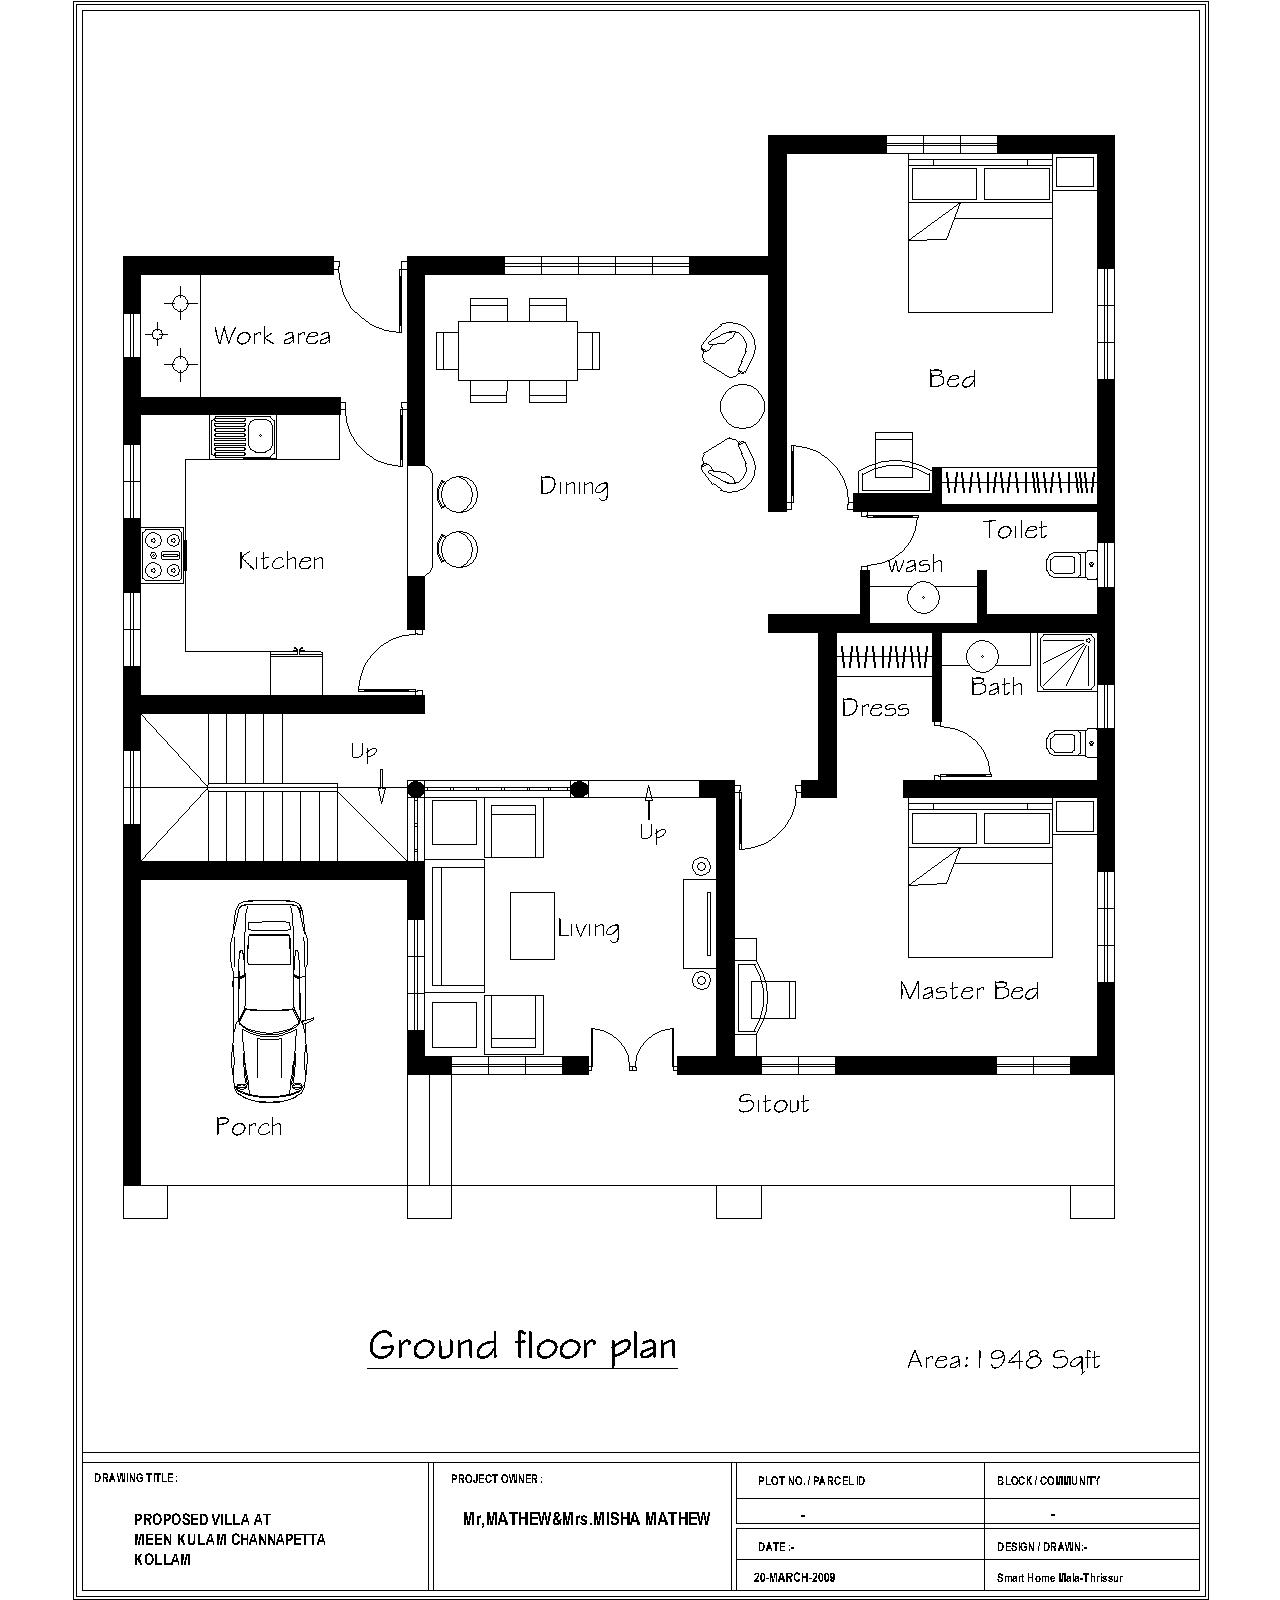 Simple 3Bedroom Zimbabwe House Plans - Zion Star on botswana house plans, saudi arabia house plans, israel house plans, rwanda house plans, accra house plans, indonesia house plans, argentine house plans, libya house plans, uganda house plans, united states of america house plans, switzerland house plans, dutch west indies house plans, gambia house plans, egypt house plans, norway house plans, guam house plans, korea house plans, nepal house plans, angola house plans, google house plans,